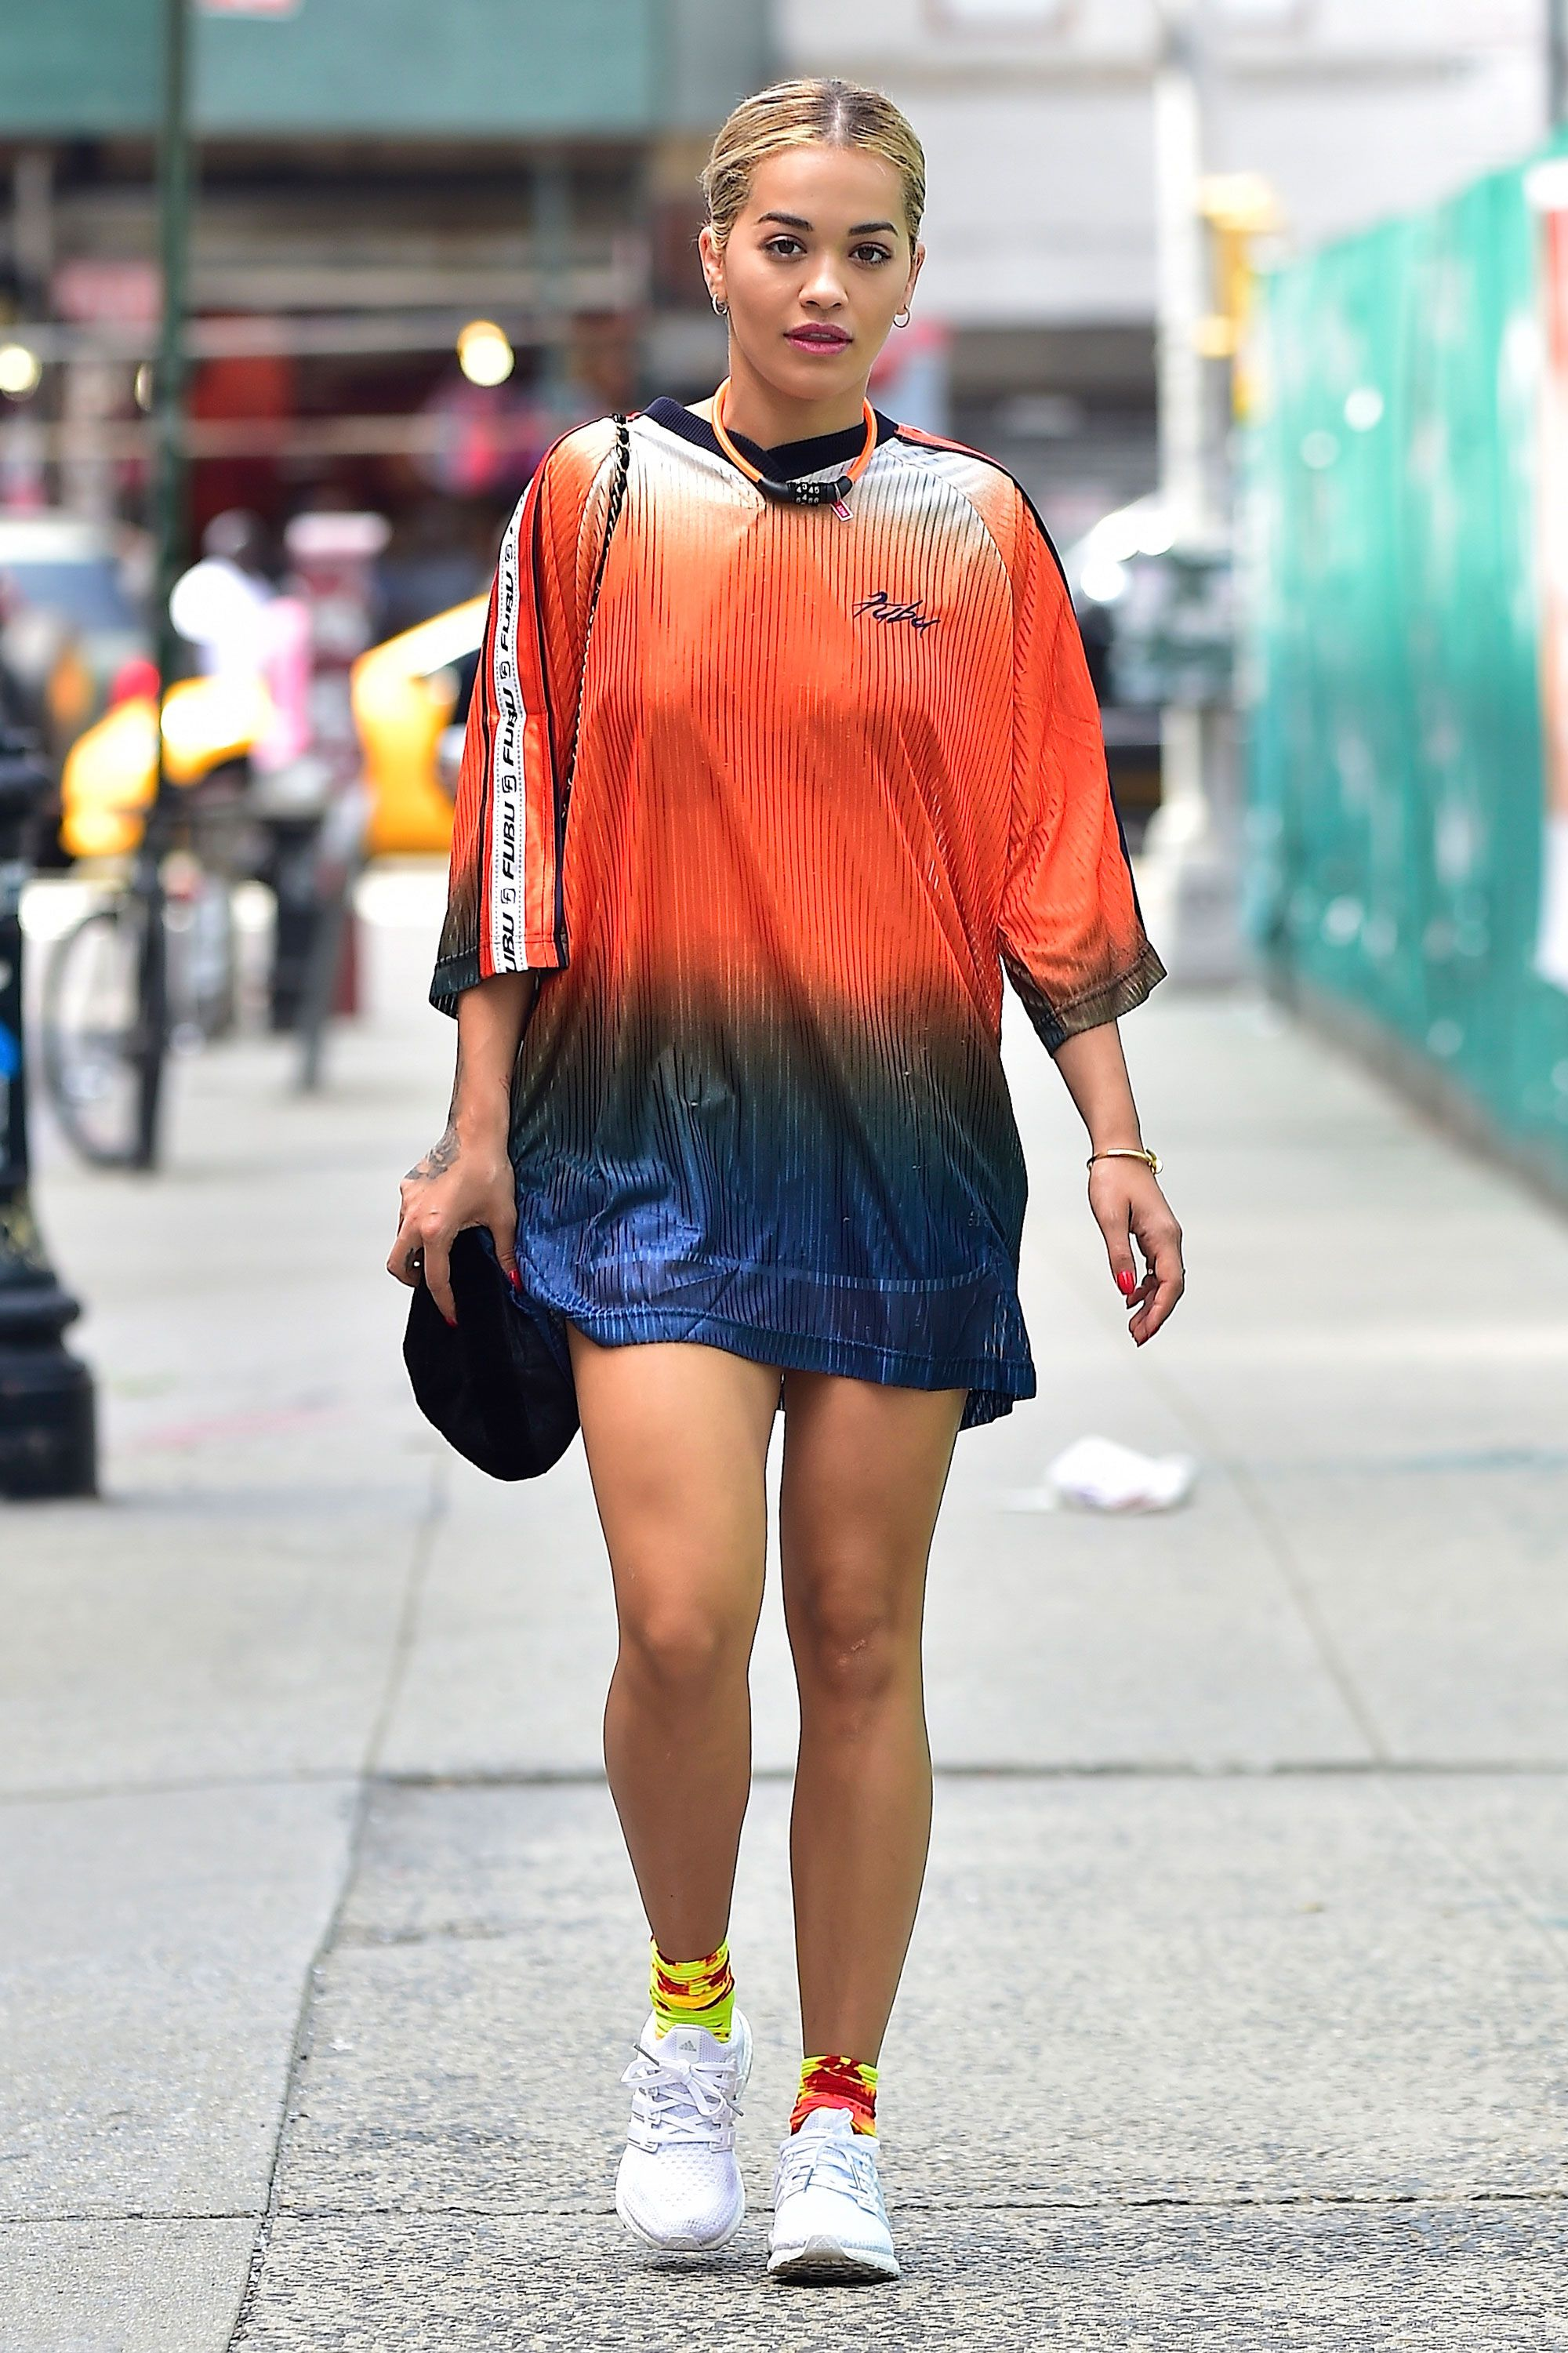 Celebrities Wearing Things! | Rita ora, Style, Fashion